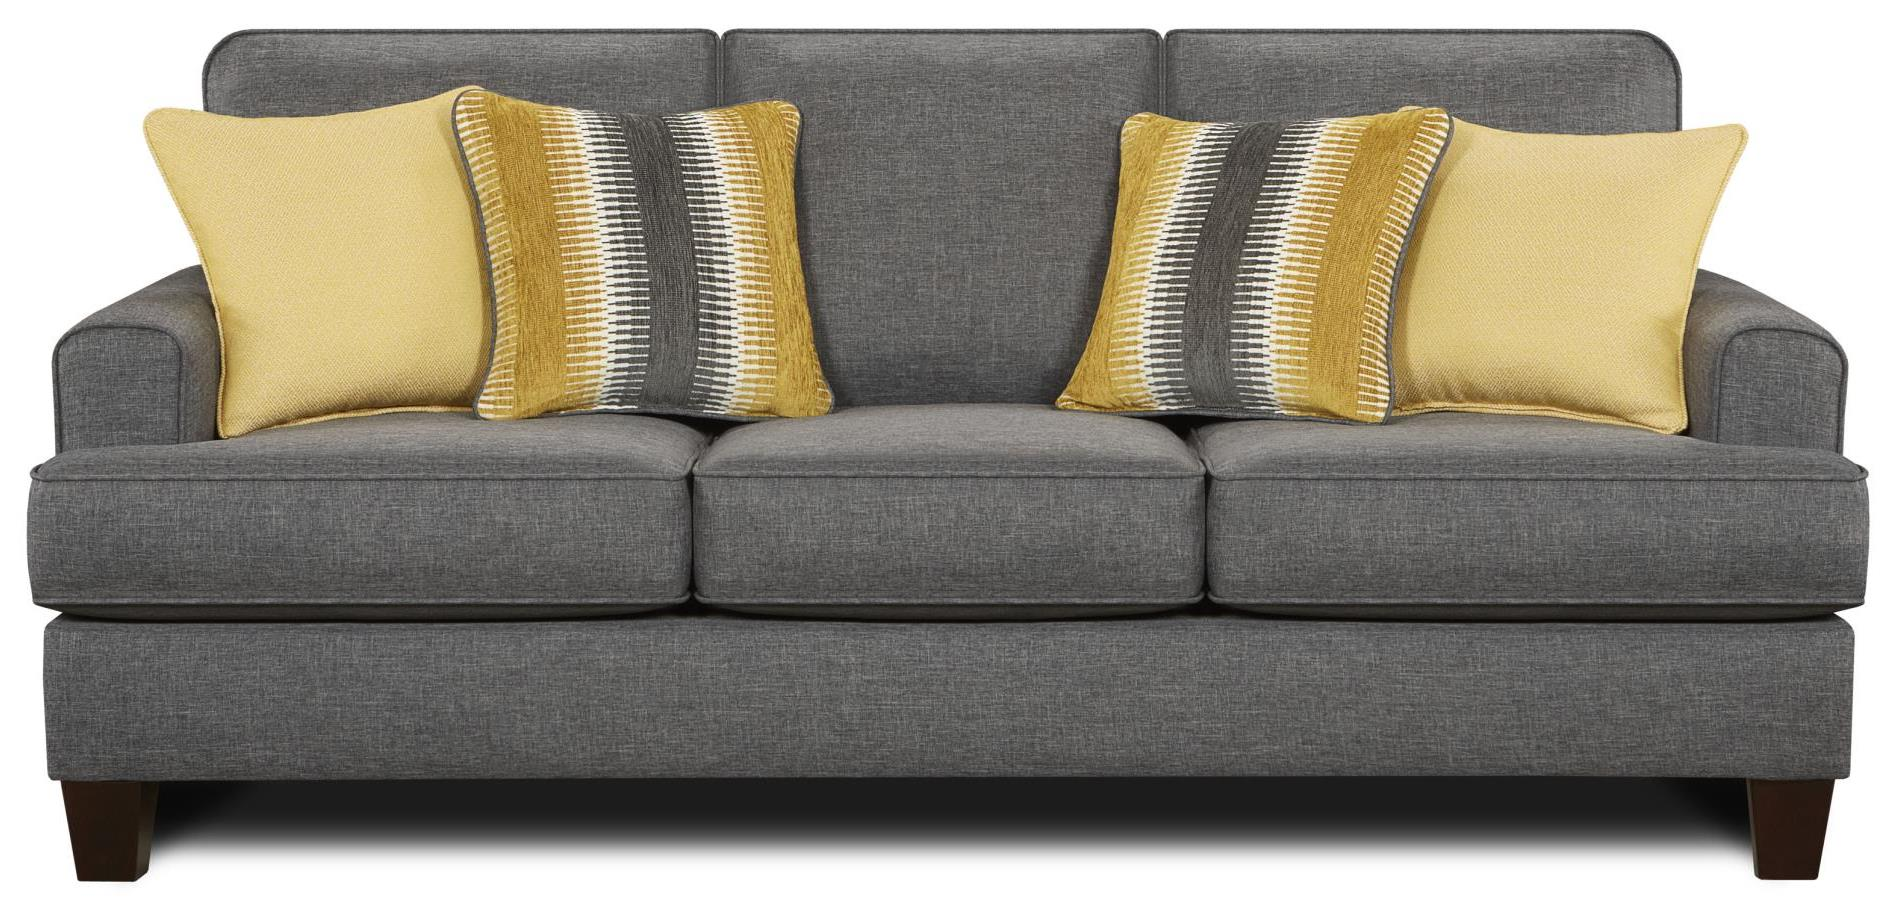 2600 Sleeper by Fusion Furniture at Story & Lee Furniture